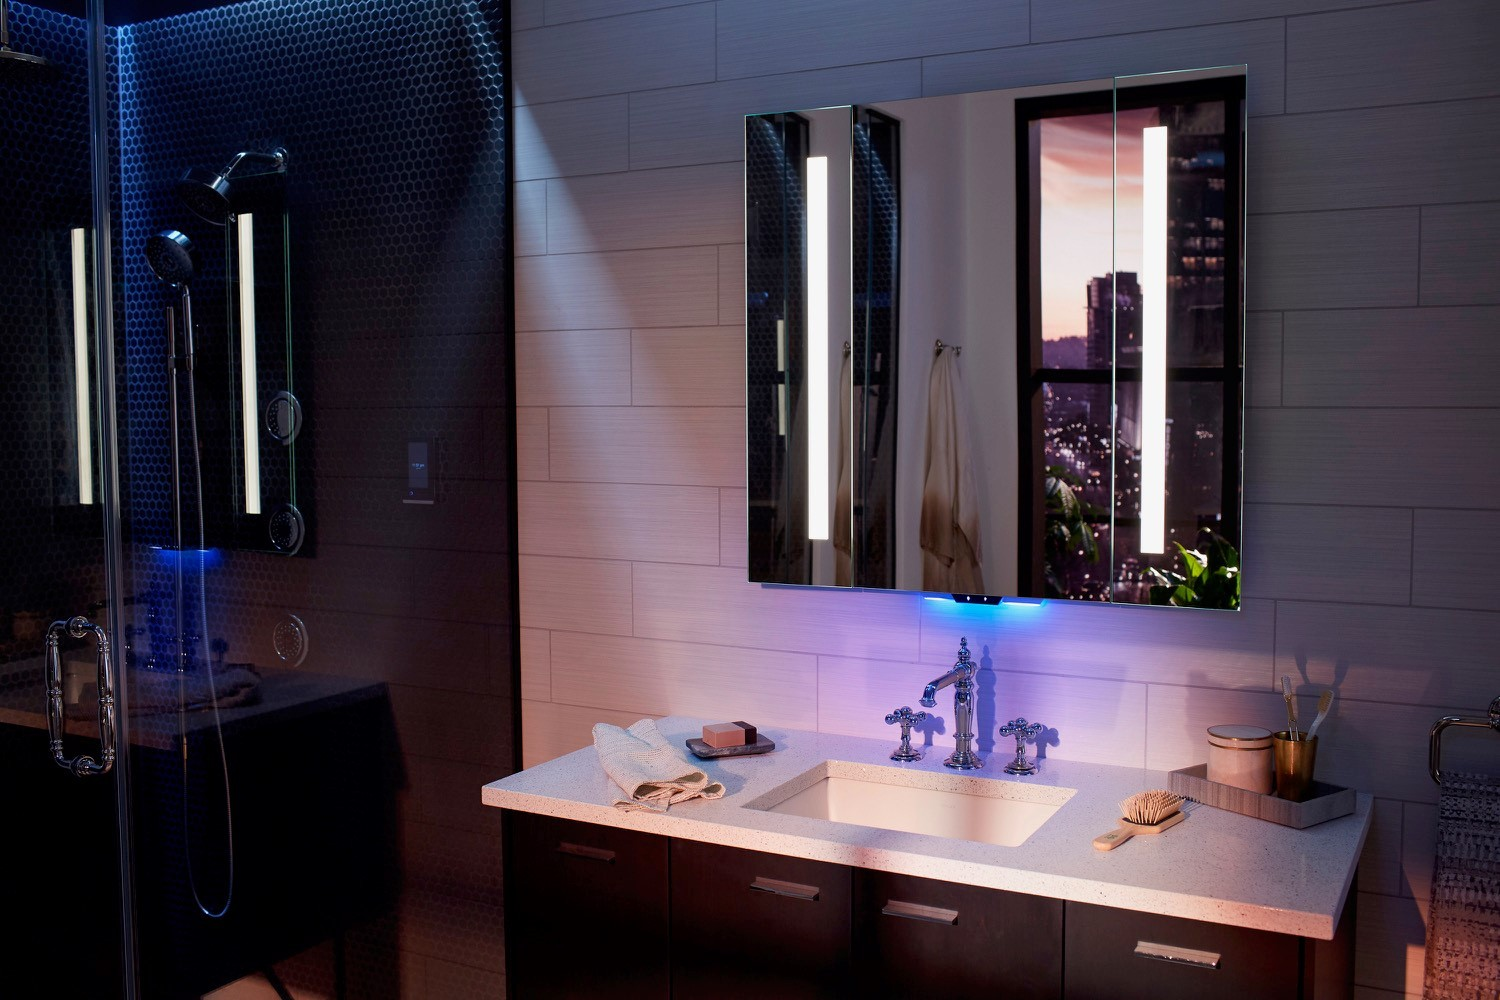 kohler announces smart products for the